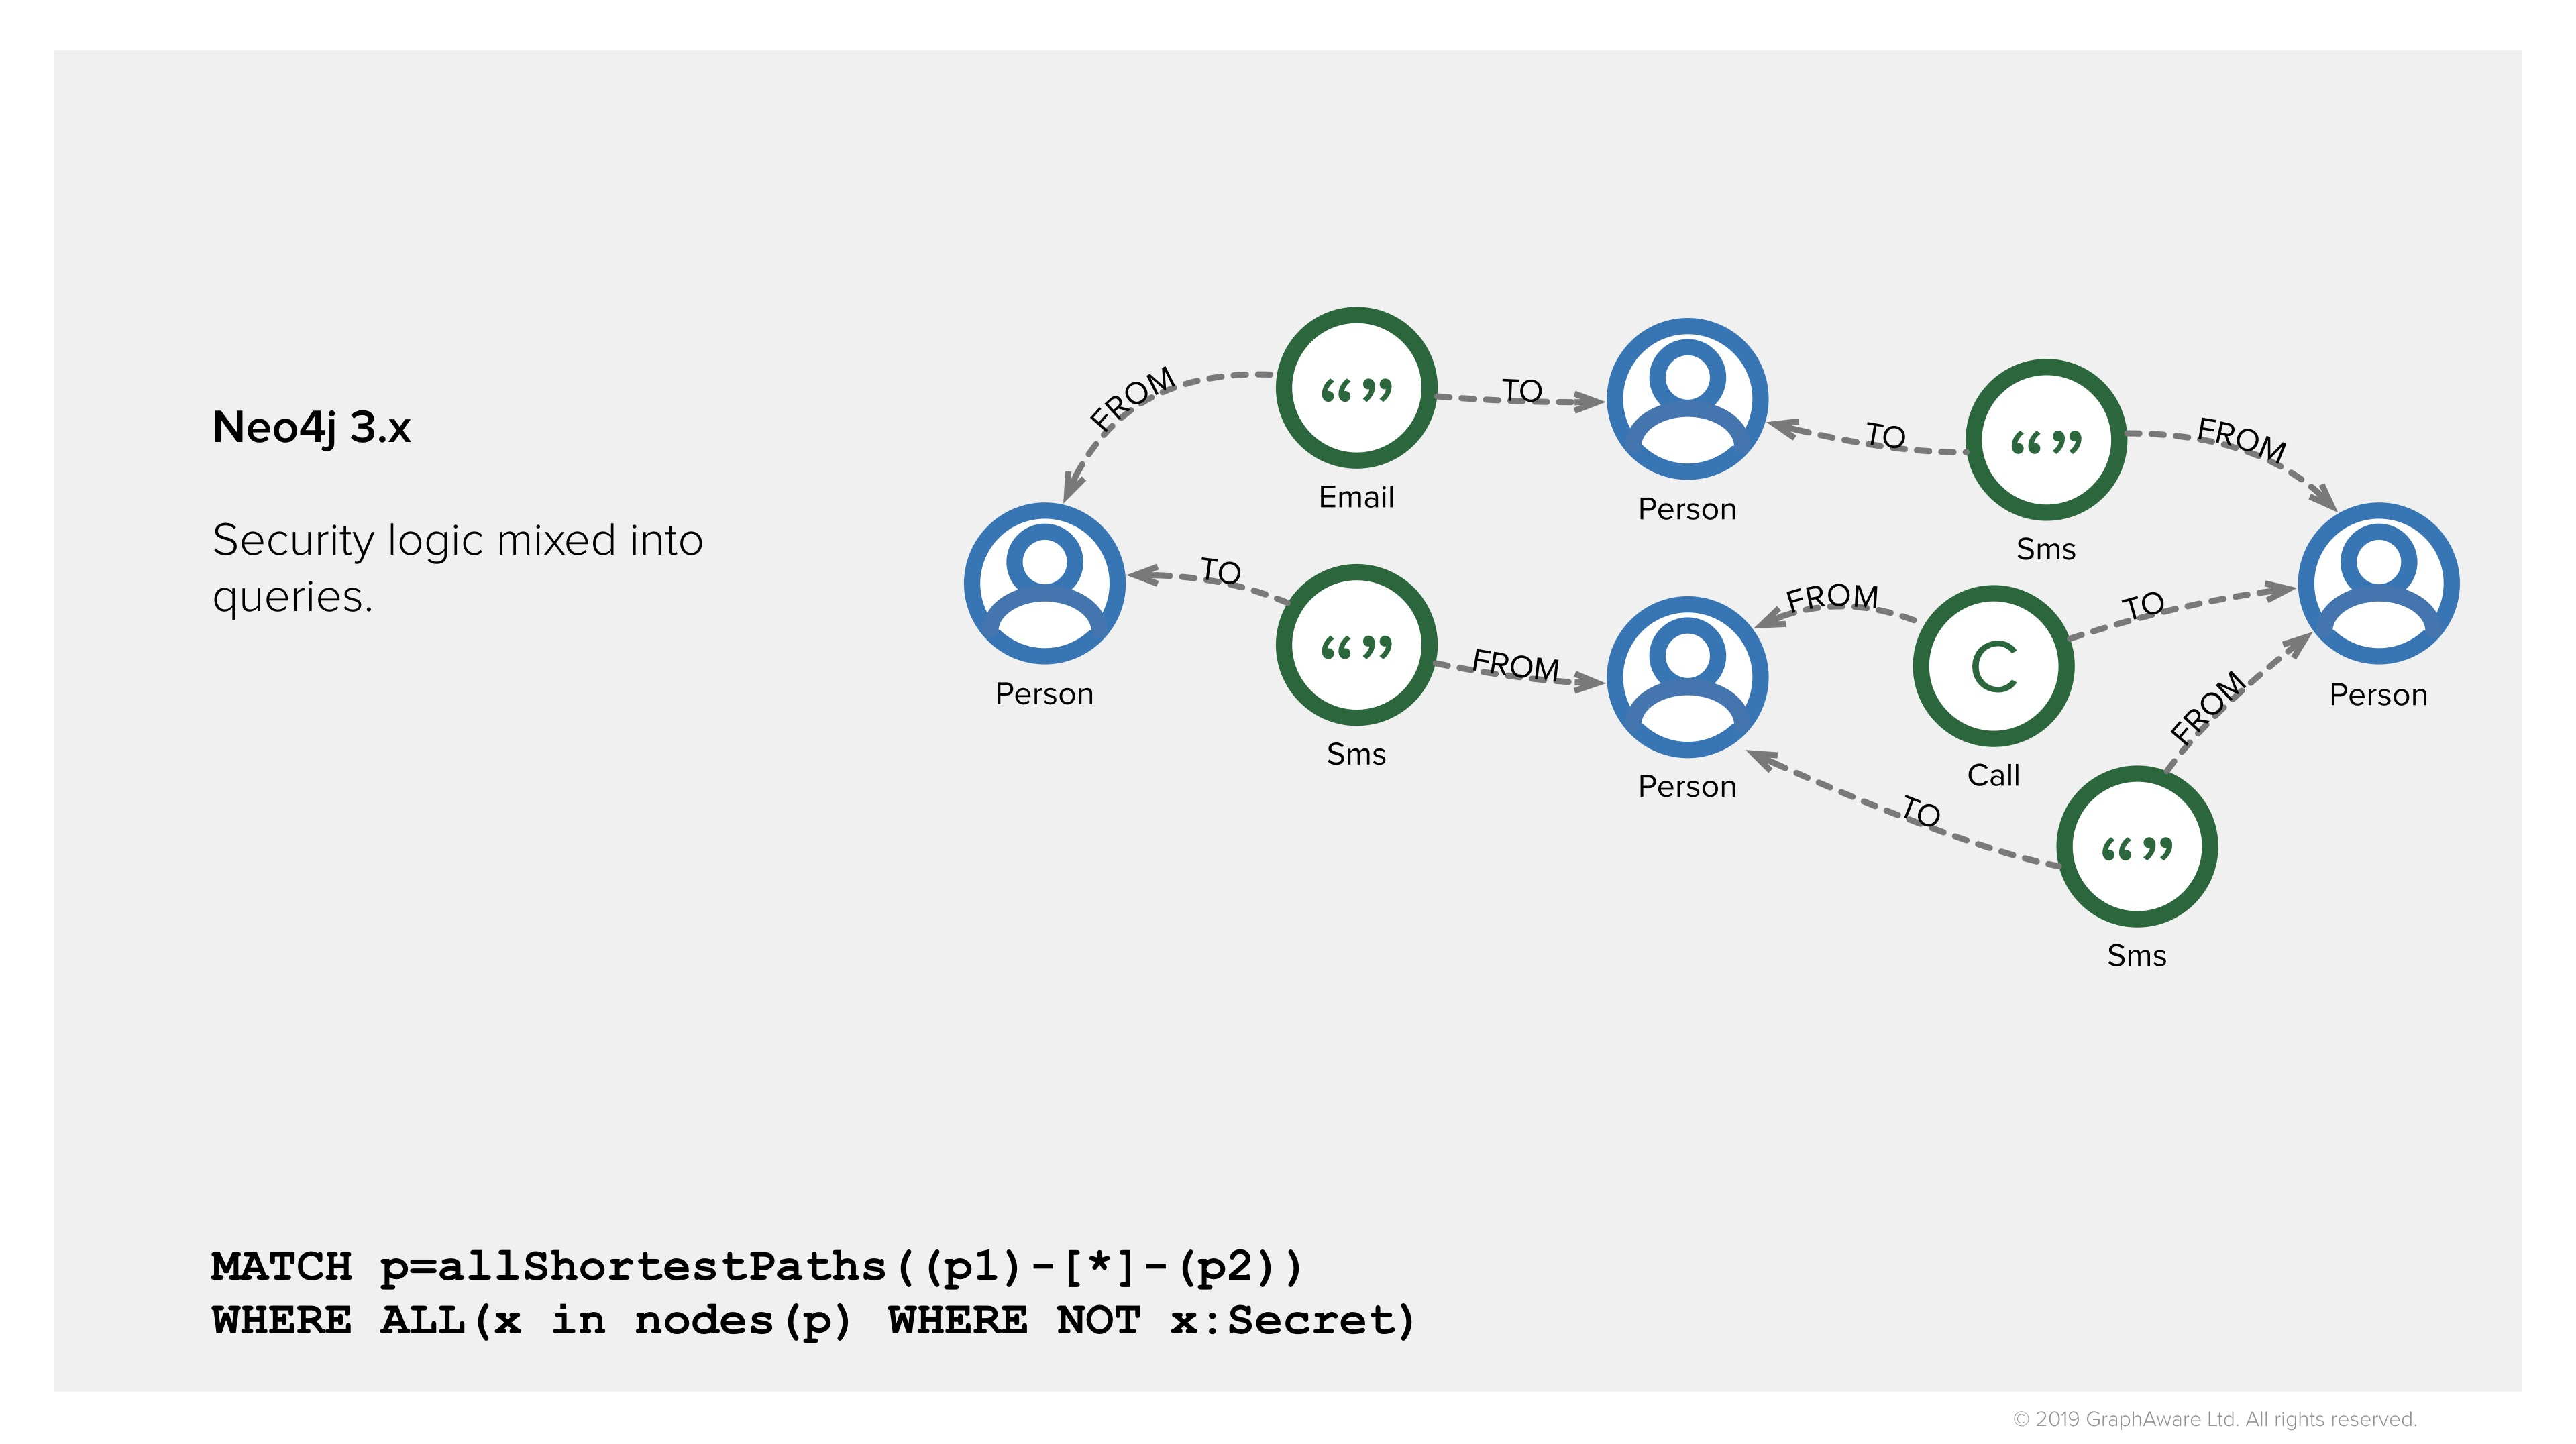 Find shortest paths in Neo4j 3.x for law enforcement - Security logic in queries